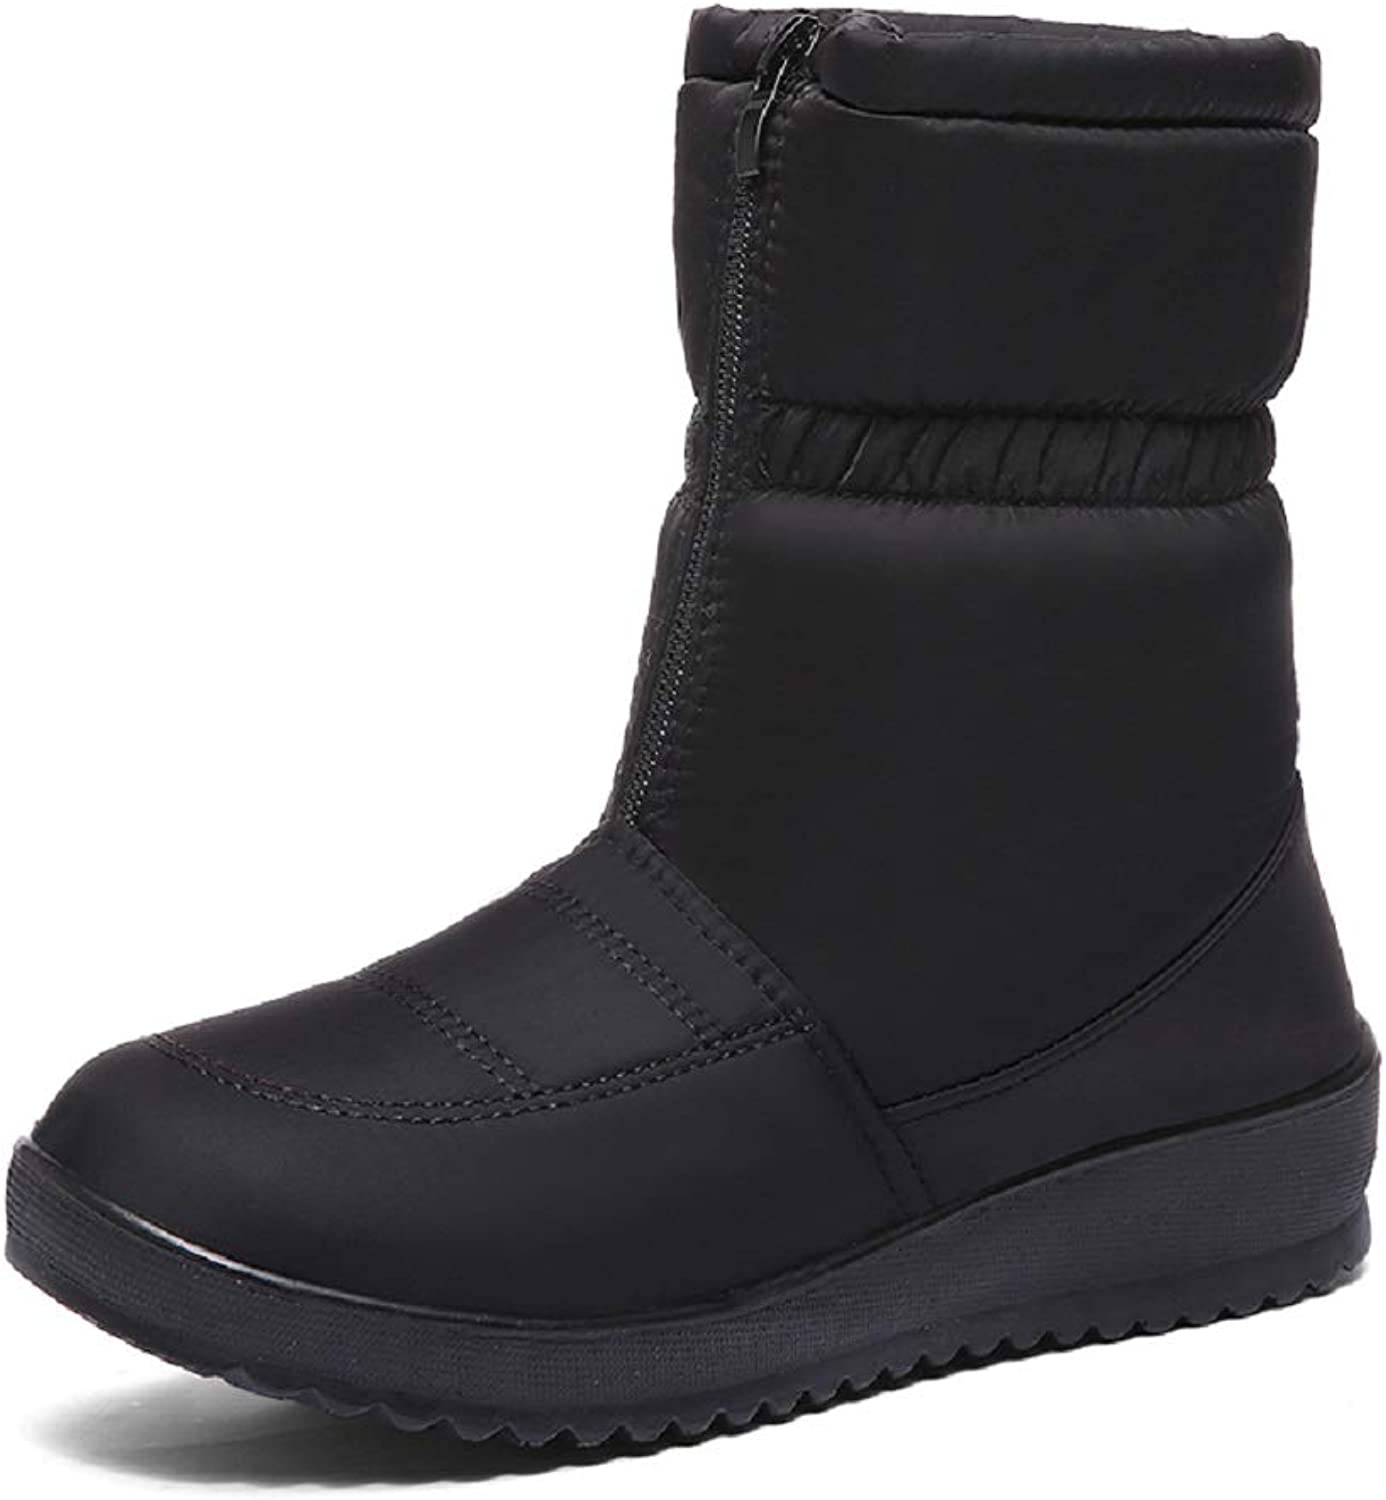 LingGT Waterproof Boots Women Cotton Fur Lined Warm Comfort shoes (color   Black, Size   CA 5)